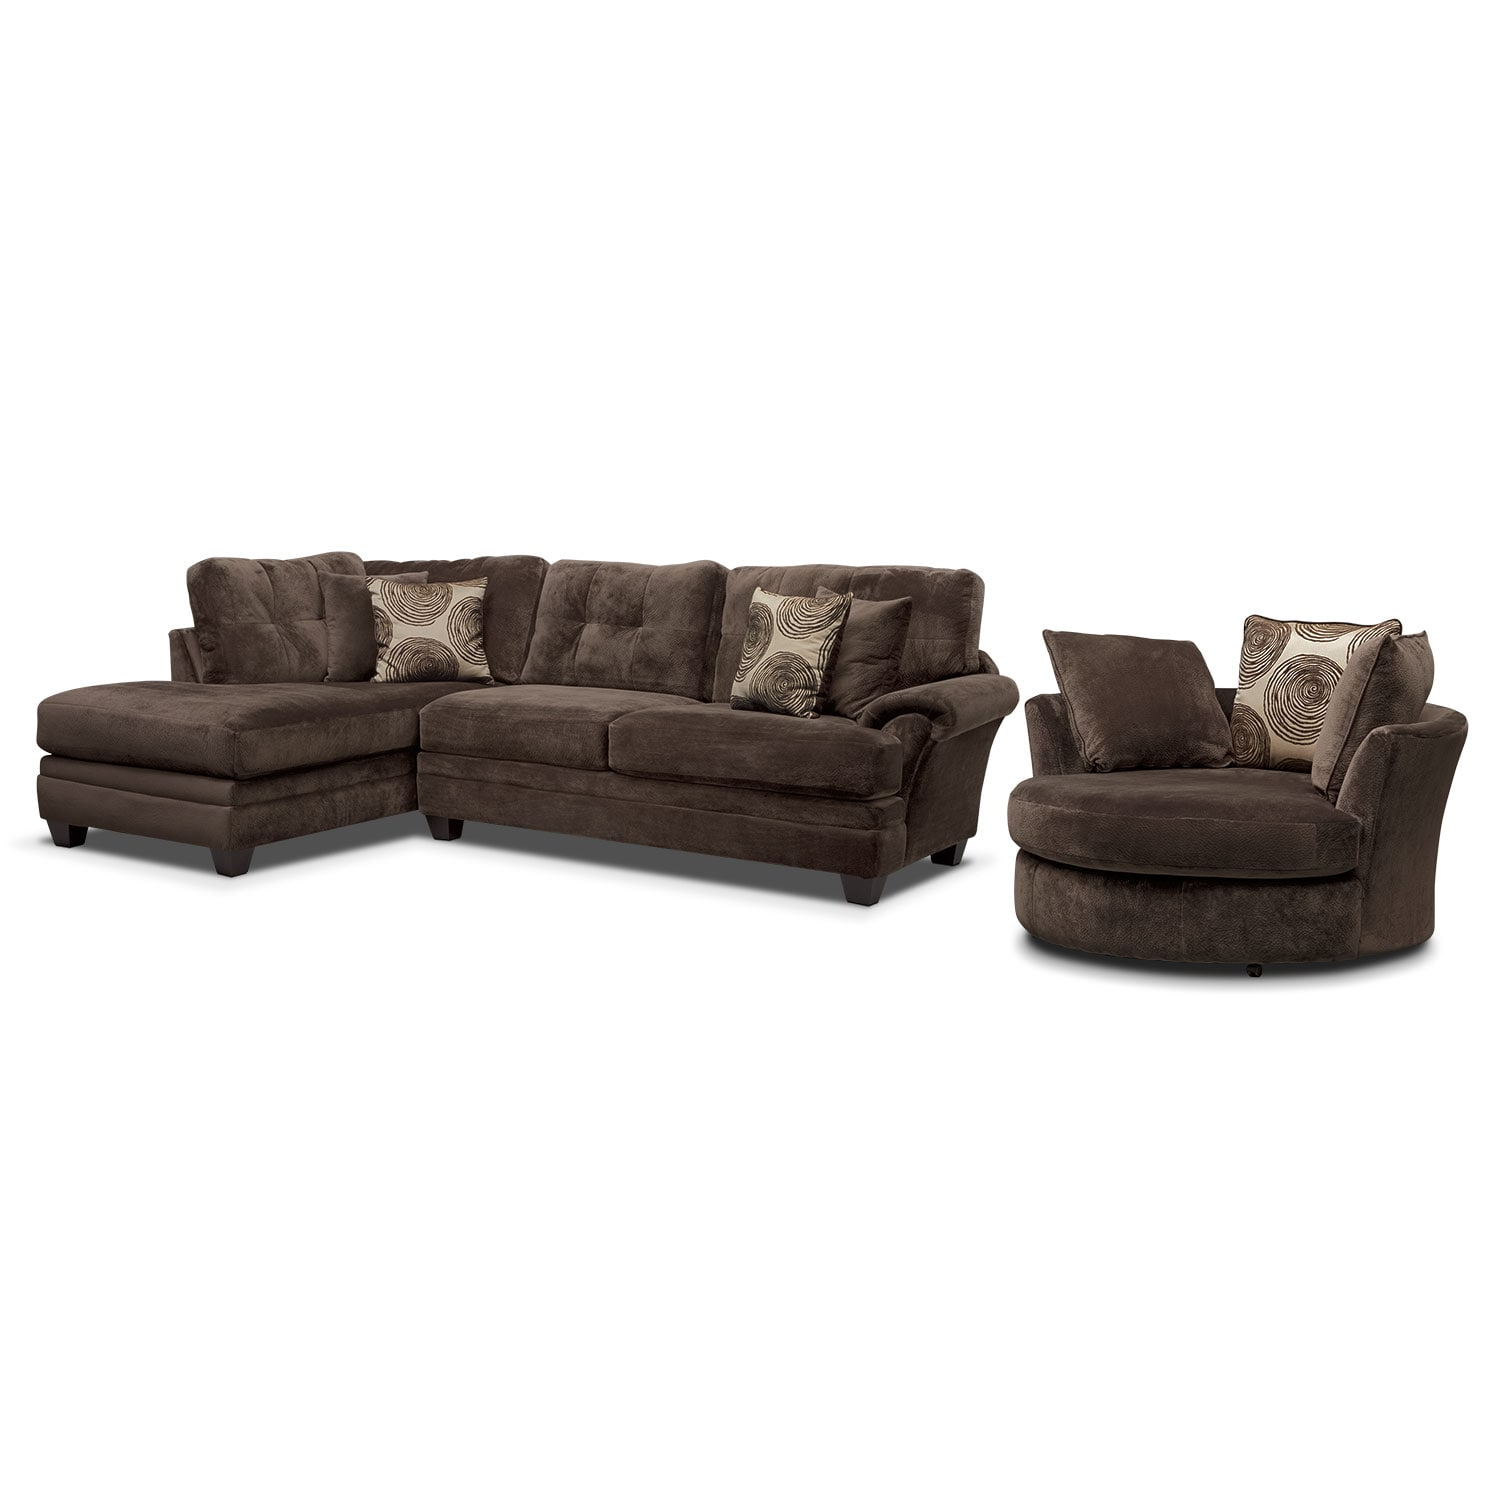 Living Room Furniture - Cordelle 2-Piece Left-Facing Chaise Sectional and Swivel Chair Set- Chocolate